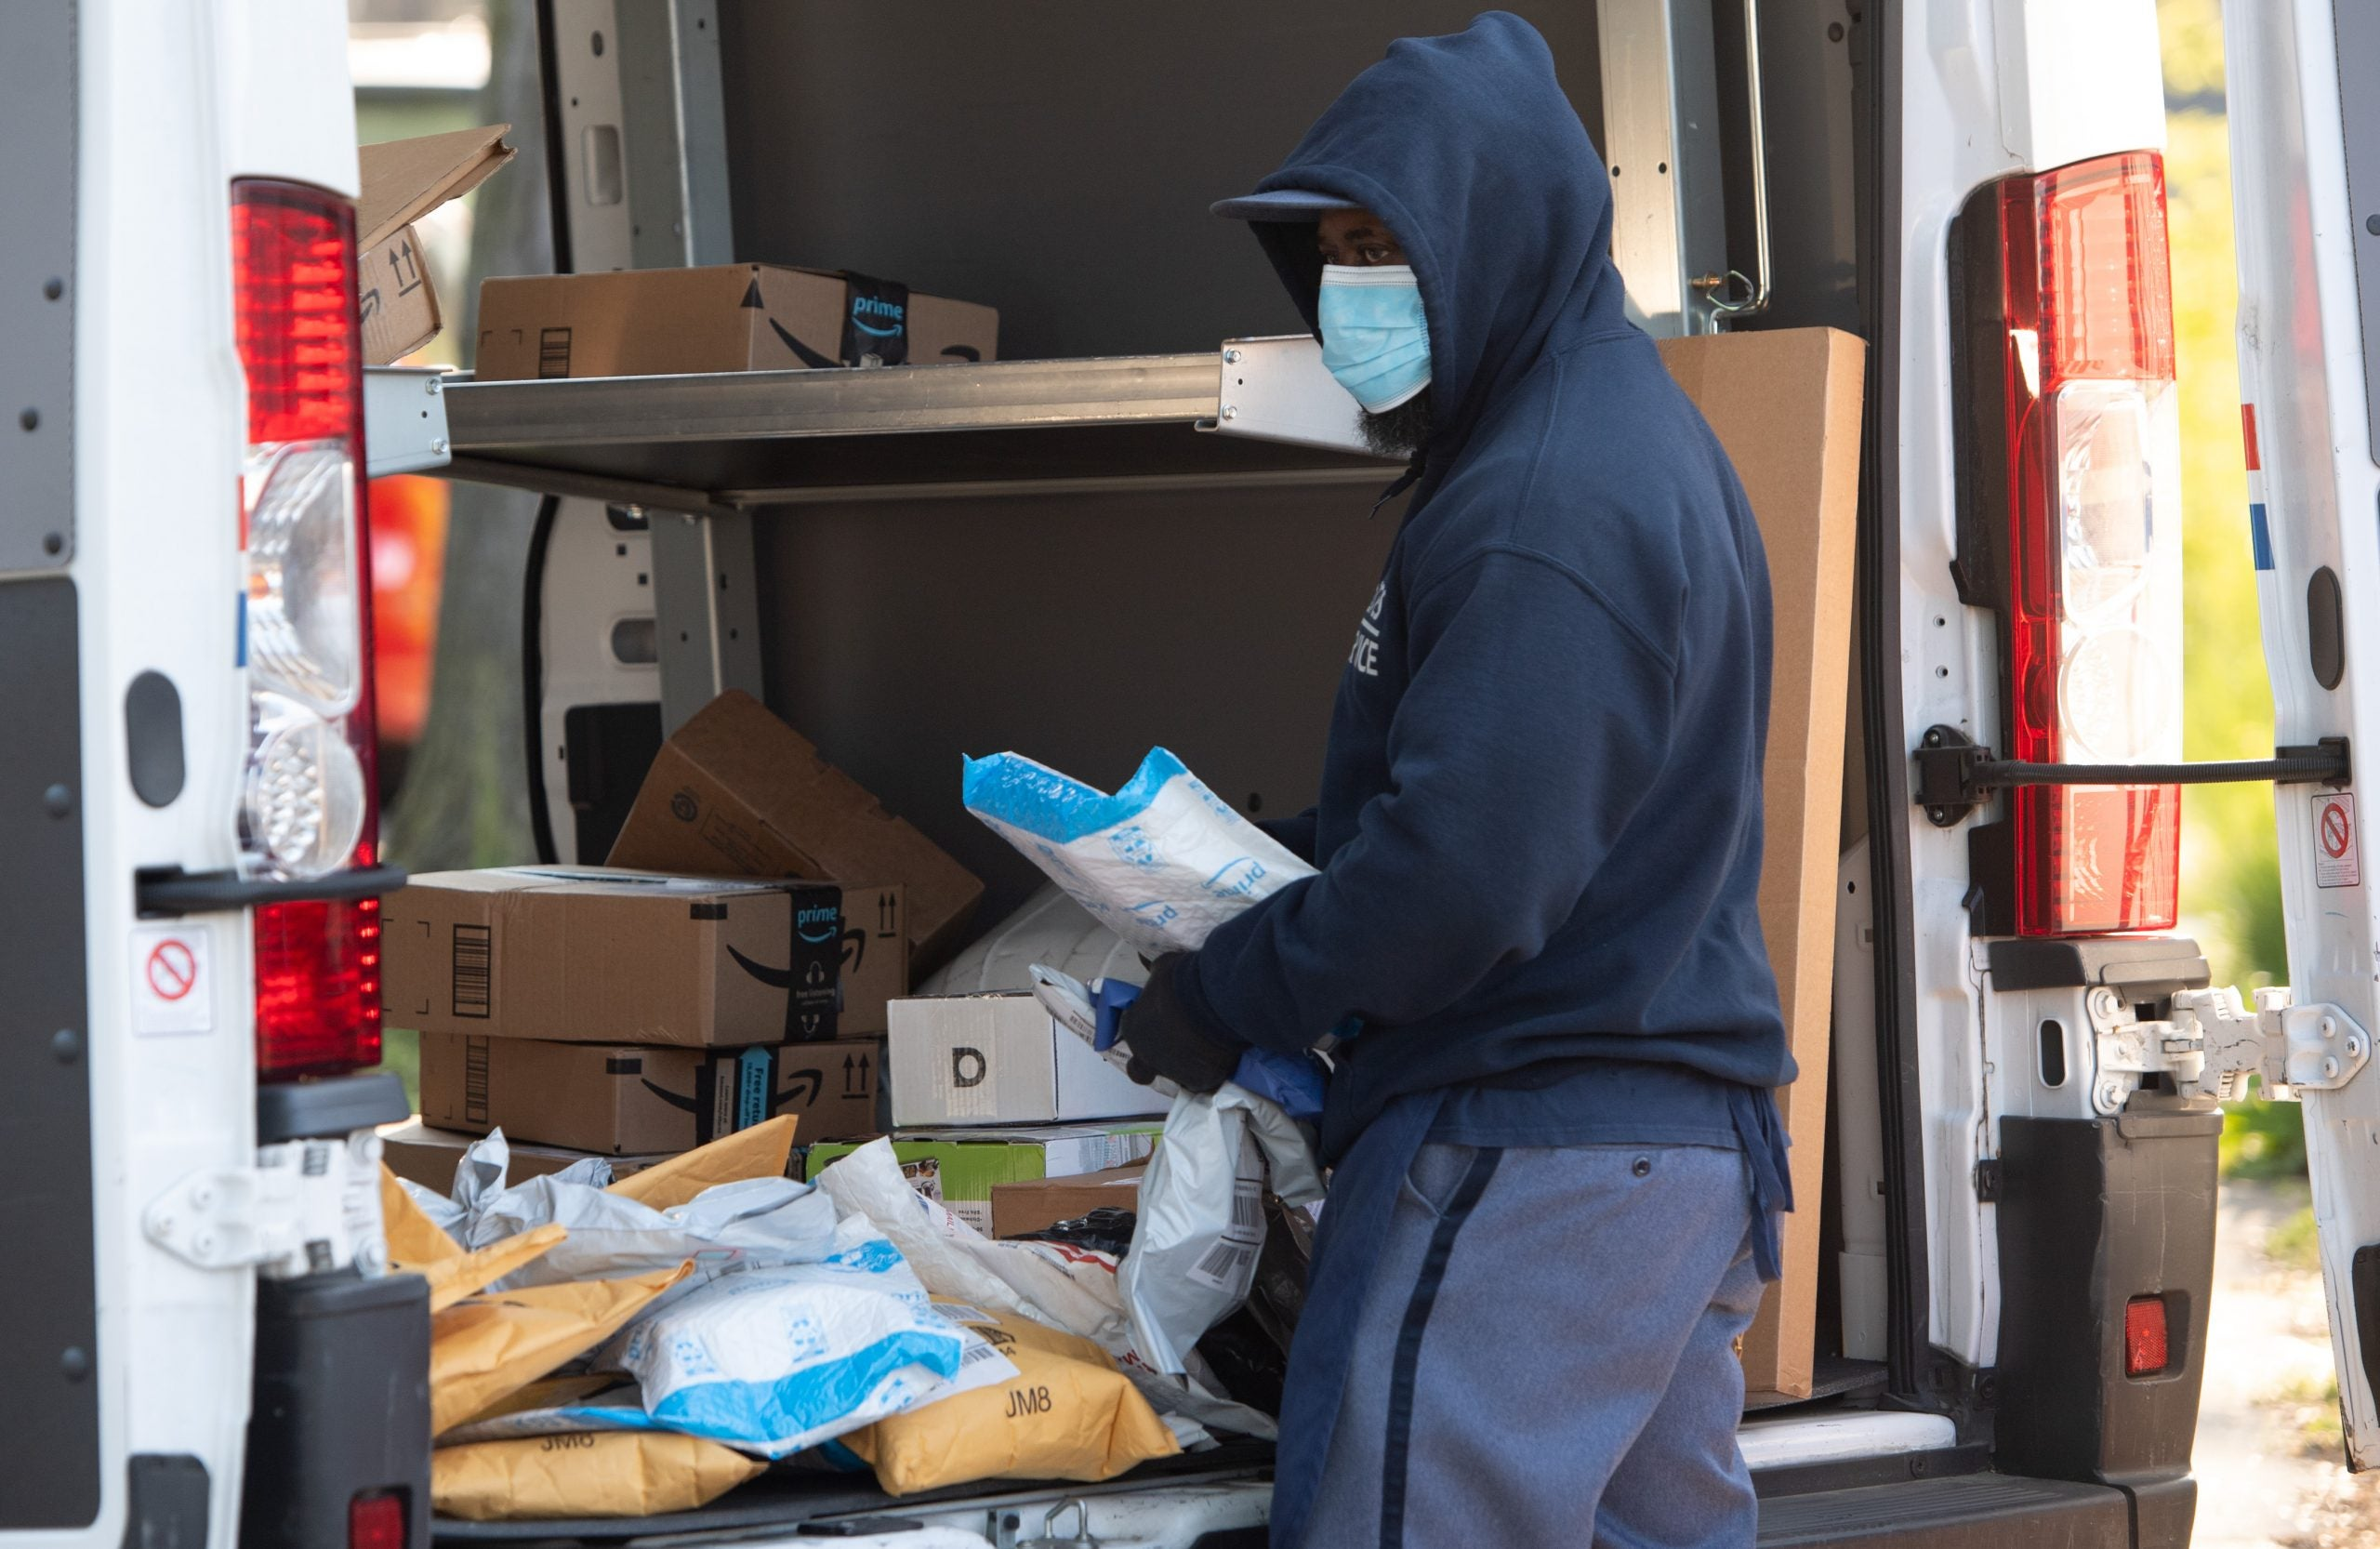 A mailman wearing a mask and gloves to protect himself and others from COVID-19, known as coronavirus, loads a postal truck with packages at a United States Postal Service